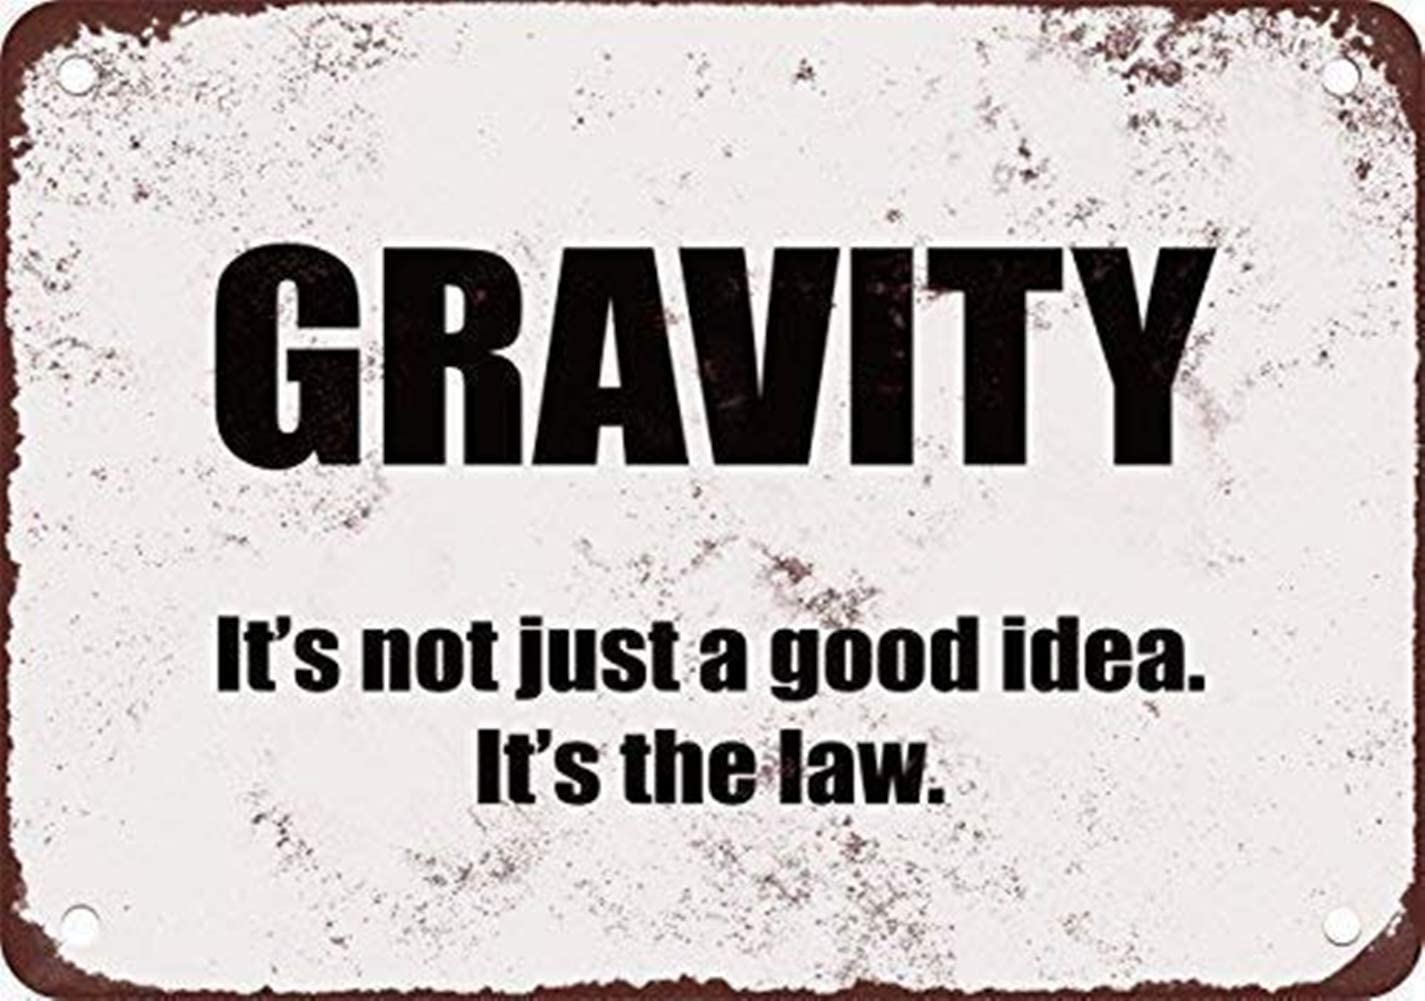 MAIYUAN Tin Sign Gravity. It39;s Not Just a Good Idea. It's The Law. Aluminum Metal Sign 8x12 INCH (51Z4023)